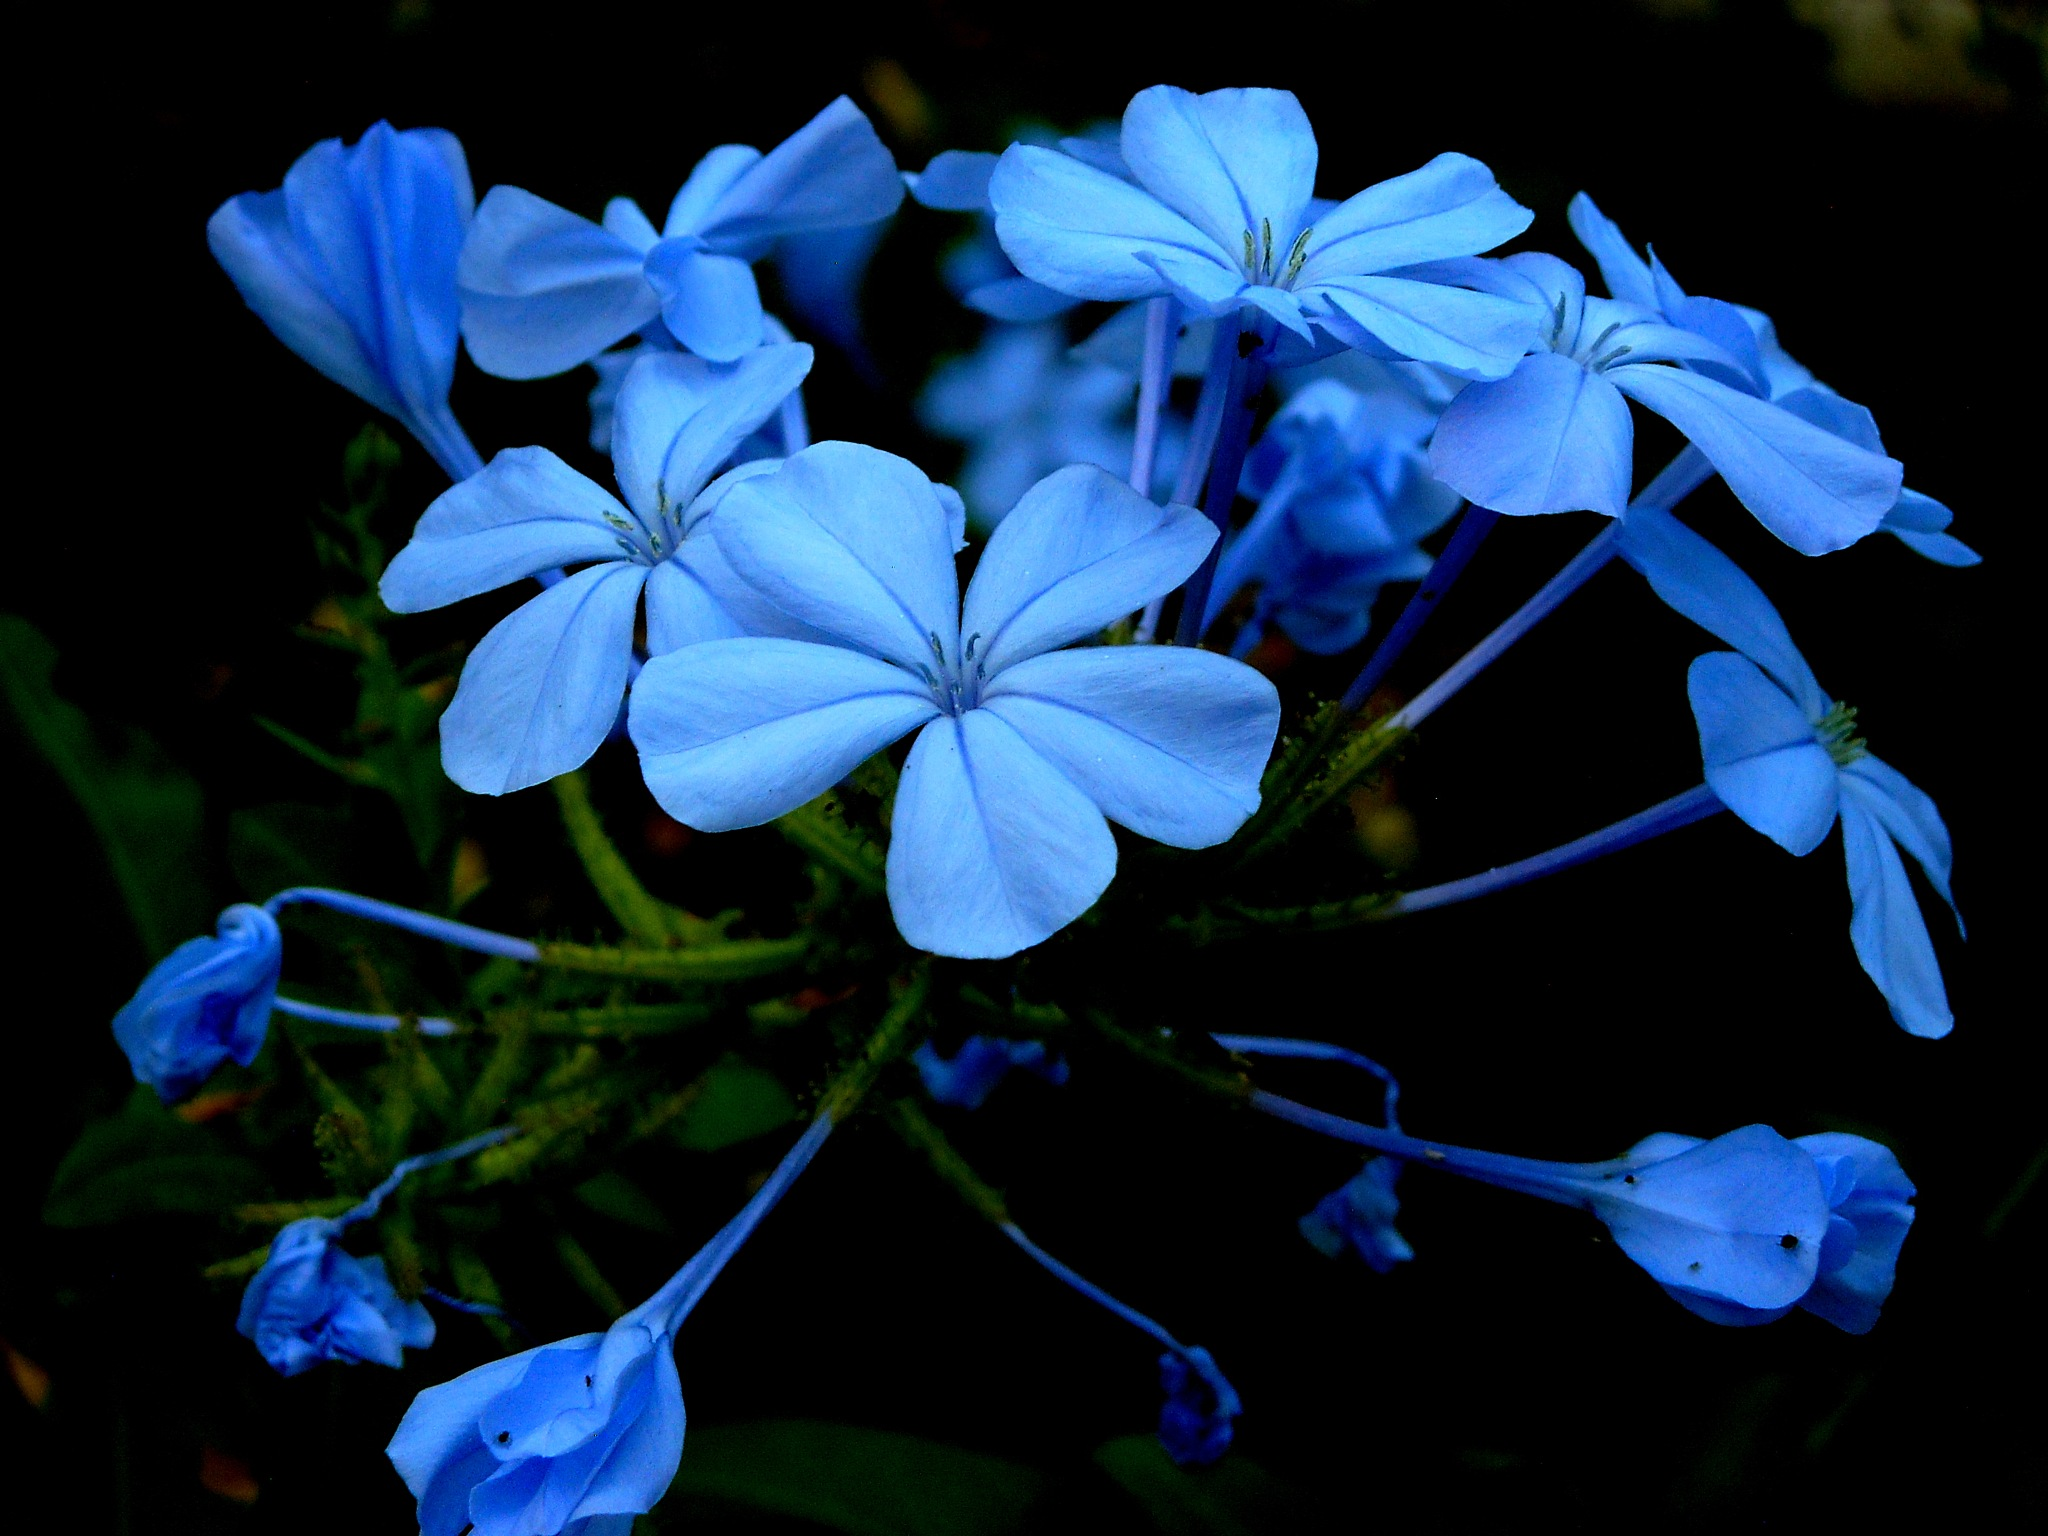 BUNCH OF BLUE JASMINES, CLOSE UP by Akin Saner